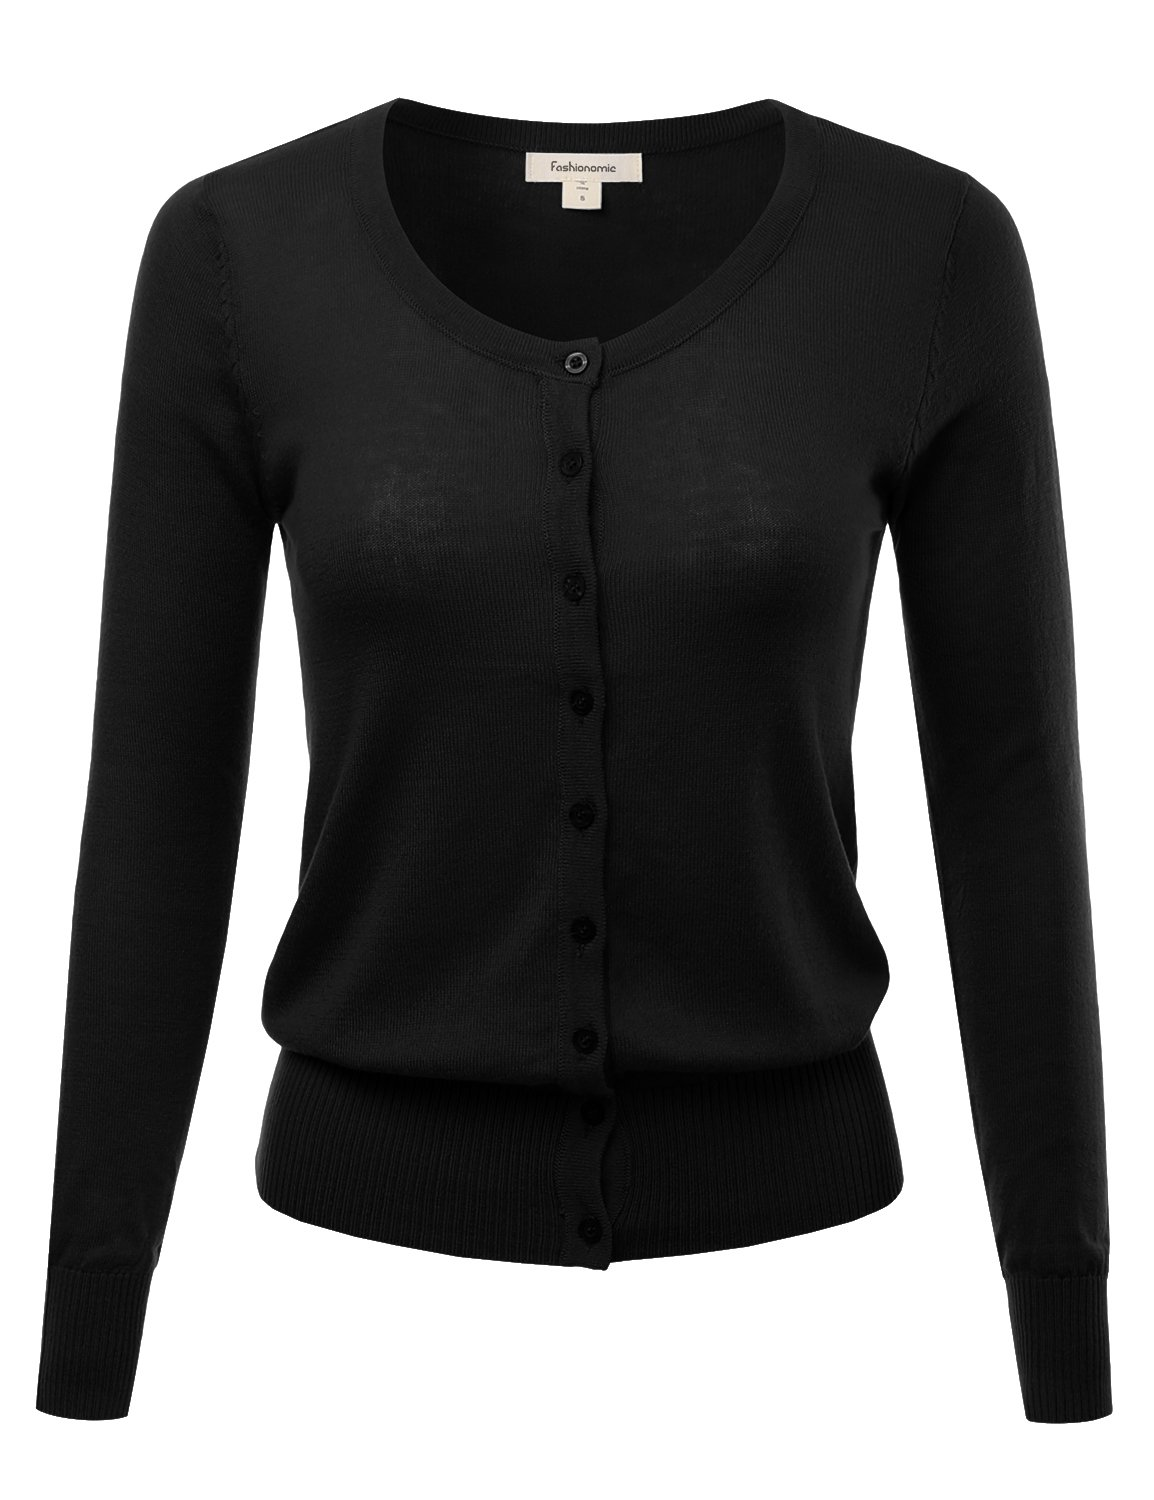 FASHIONOMIC Women's Button Down Crew Neck Light Weight Long Sleeve Knit Cardigan Sweater (S-75X) (CLLC001) Black 1X